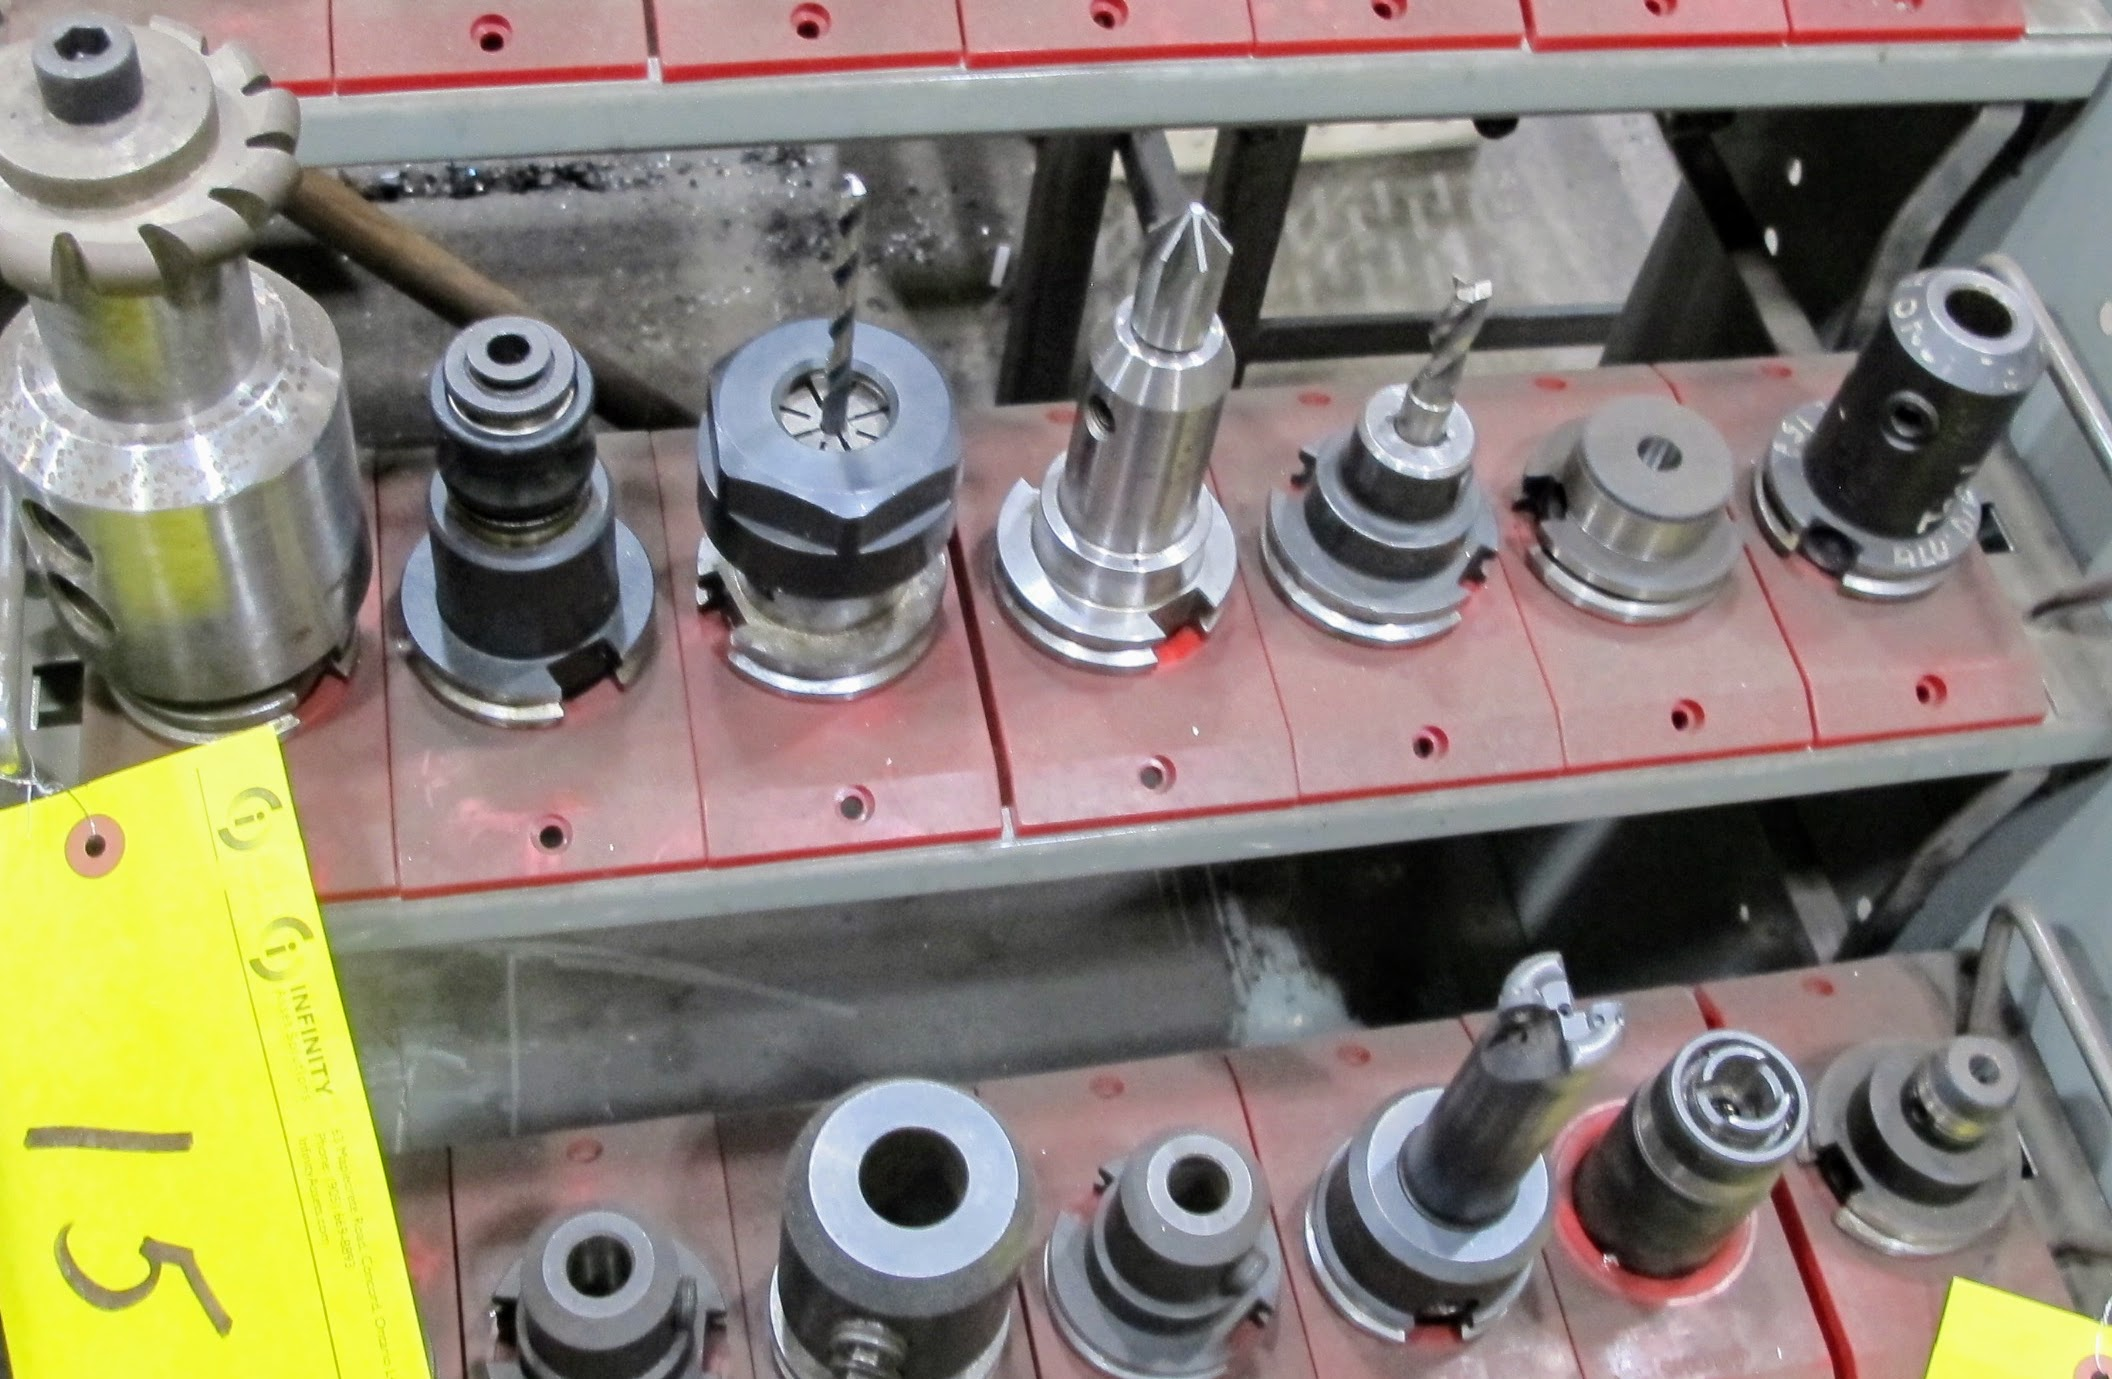 LOT OF 7 CAT 40 TOOL HOLDERS W/ATTACHMENTS